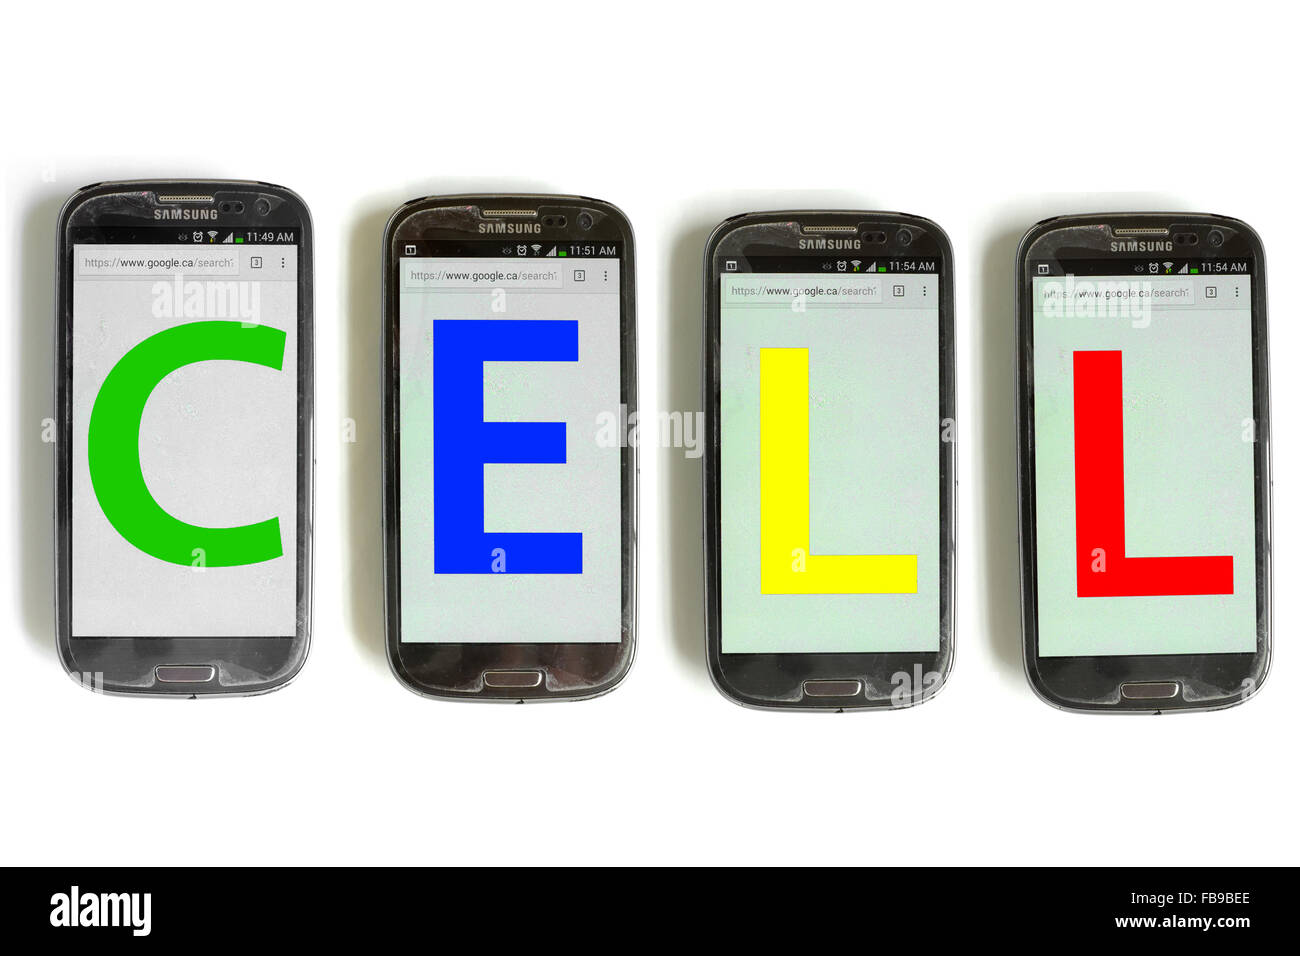 Cell written on the screens of smartphones photographed against a white background. - Stock Image